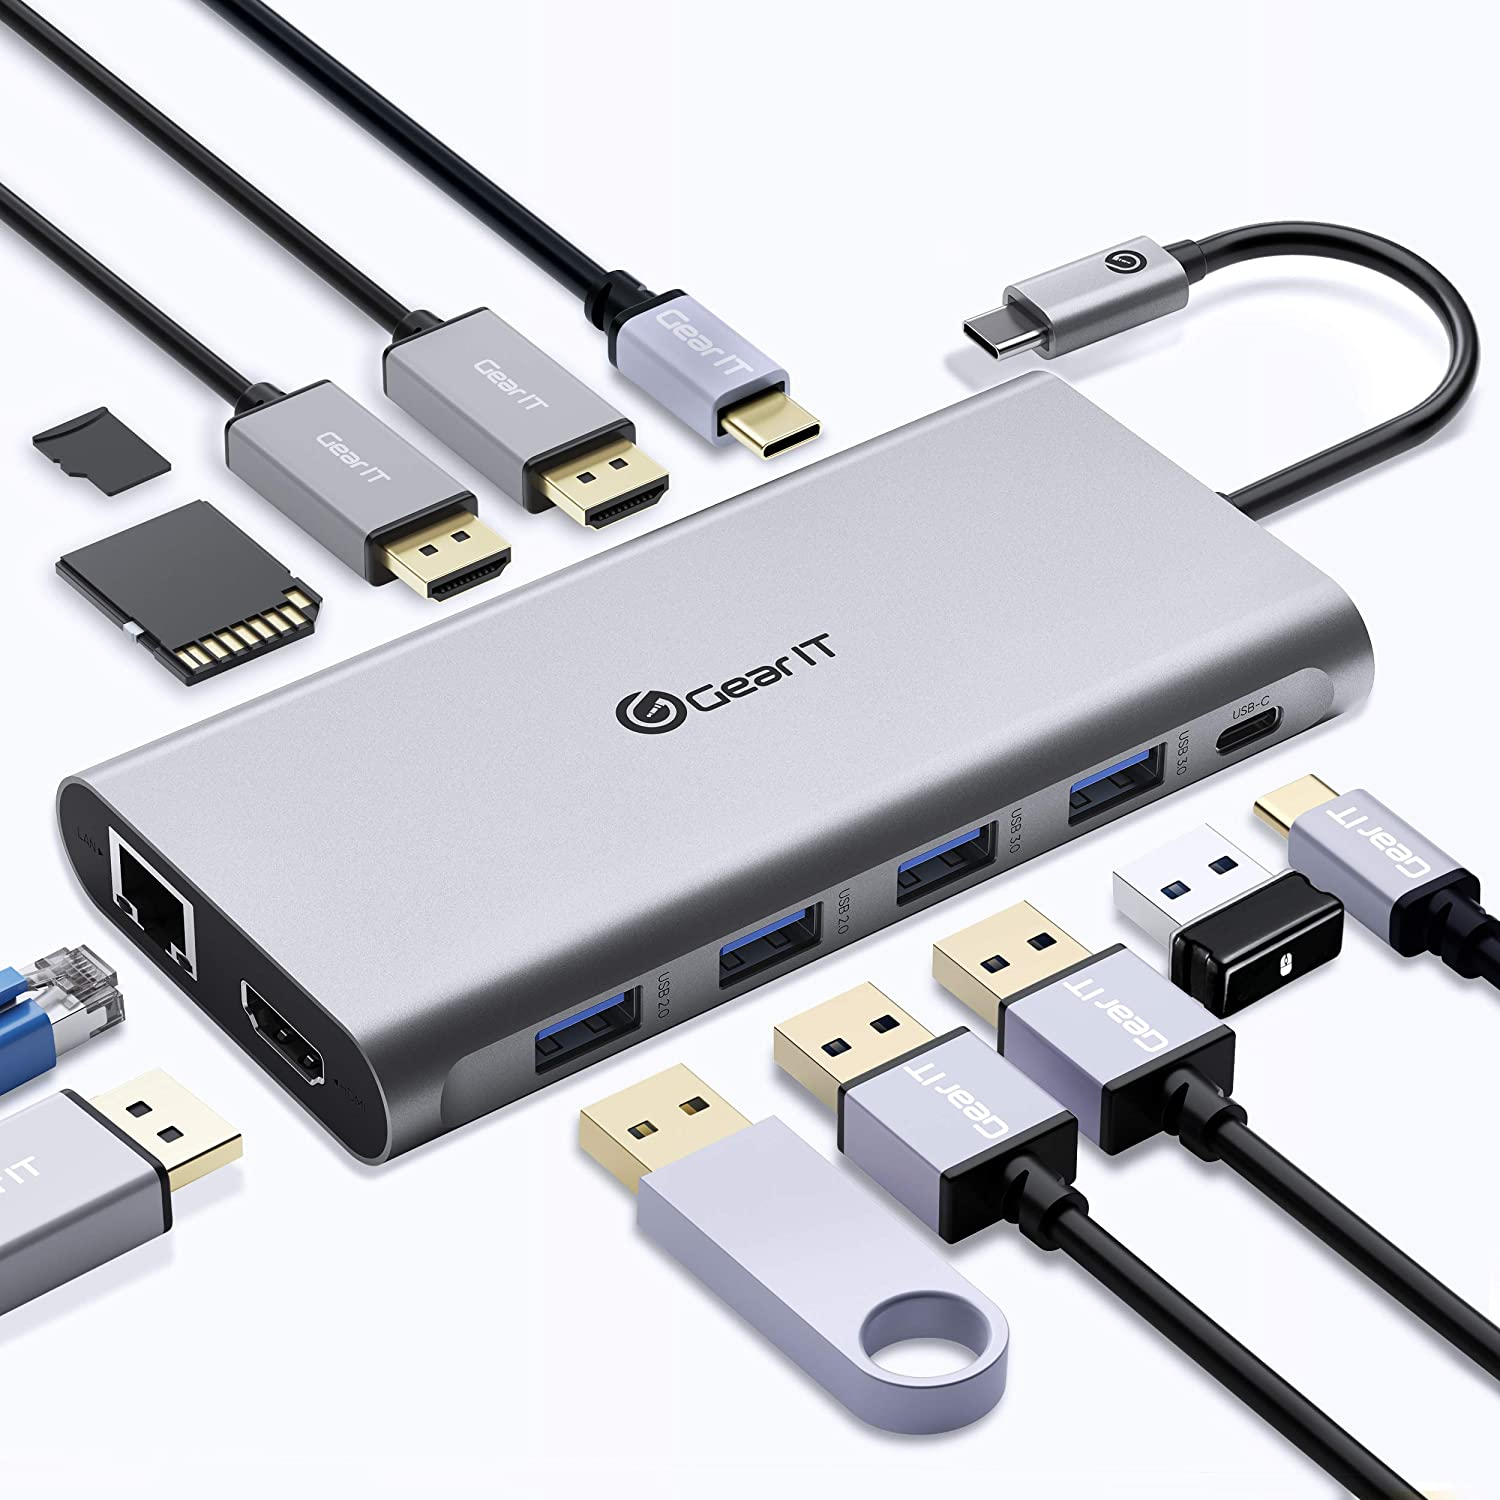 GearIT USB C Hub 12-in-1 with Delivery Power Credence San Diego Mall 100W PD USB-C